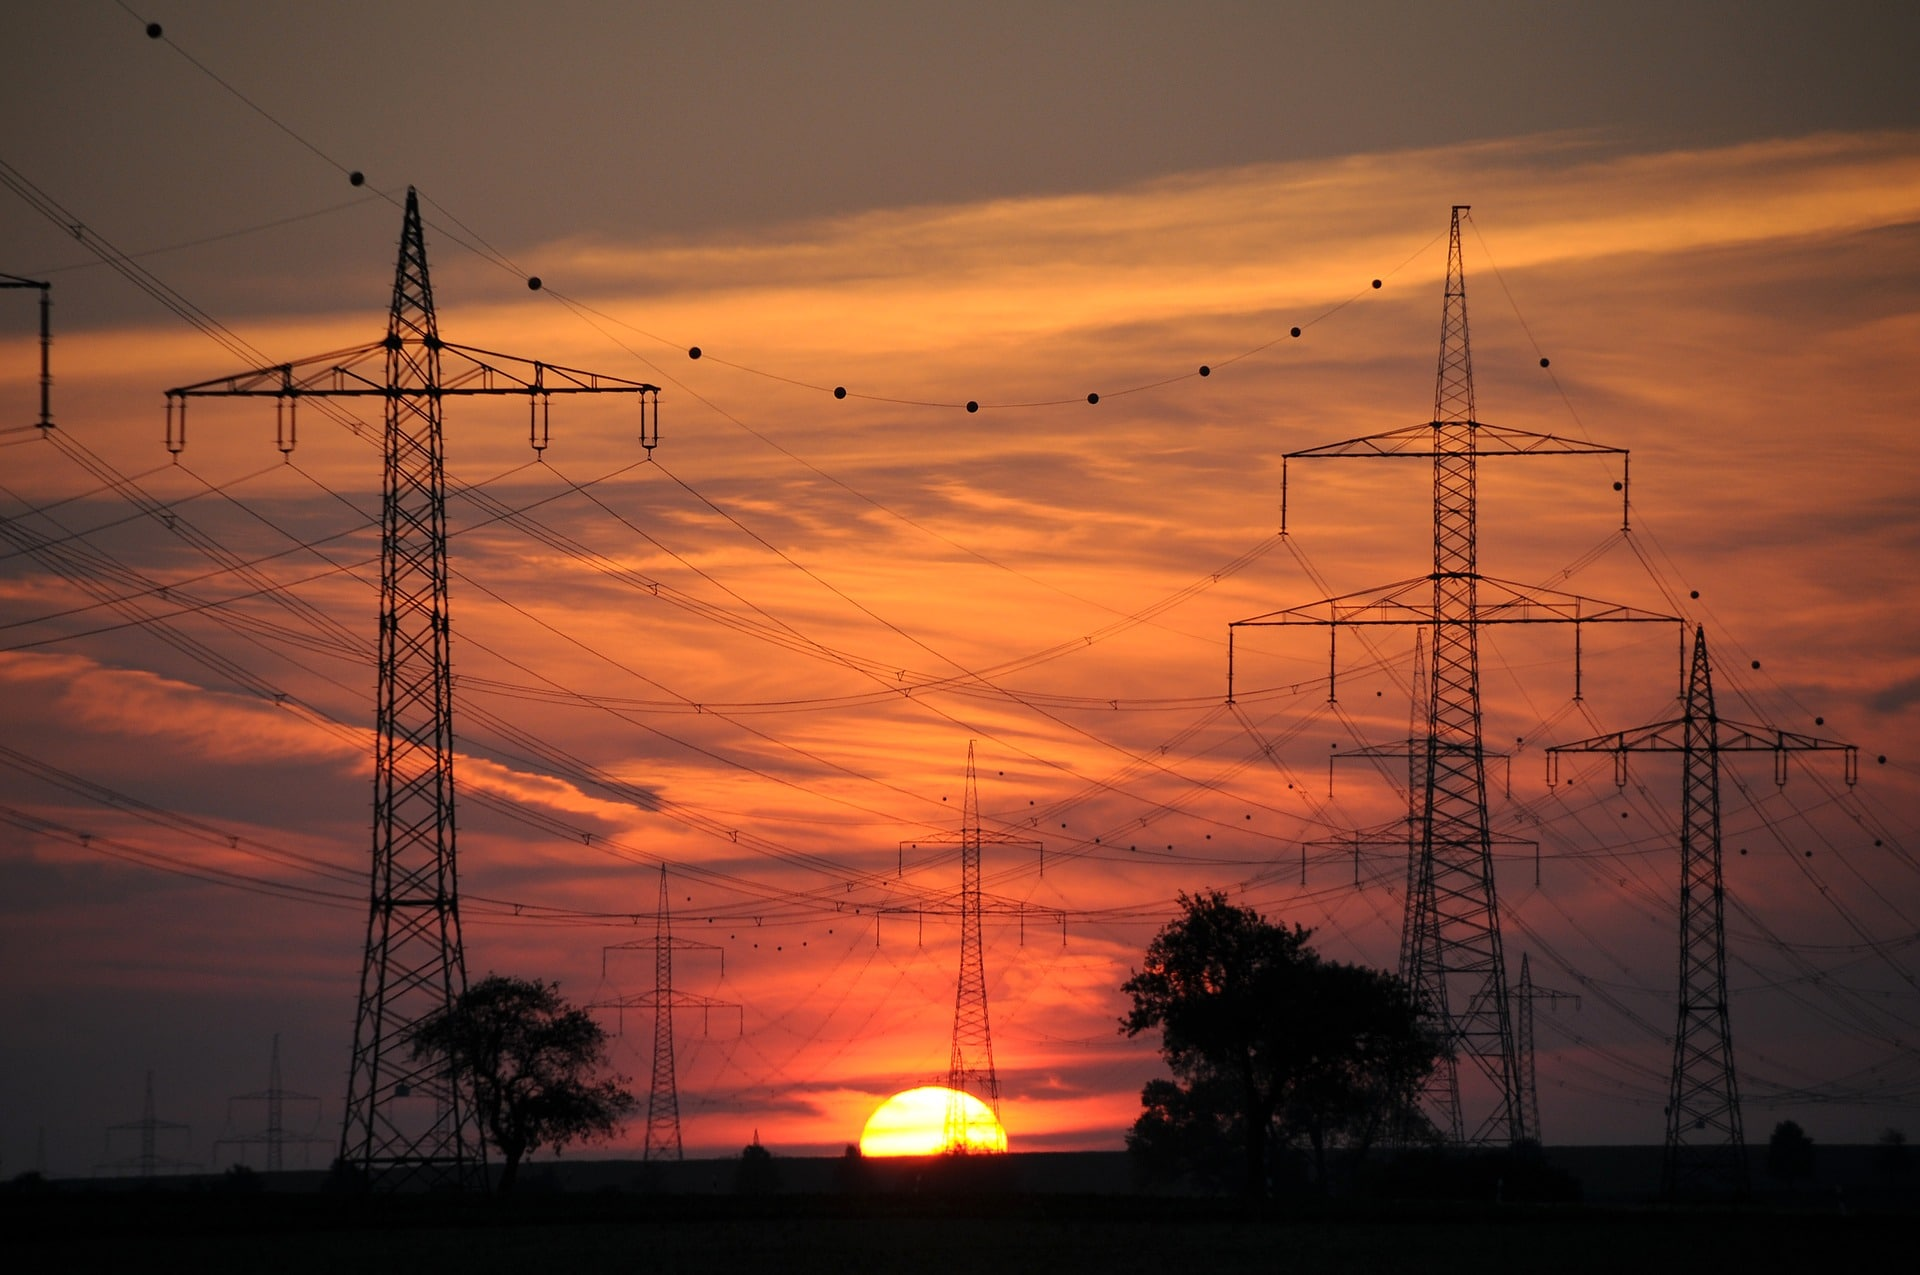 power electric/ essay This course is an introductory subject in the field of electric power systems and electrical to mechanical energy conversion electric power has become increasingly important as a way of transmitting and transforming energy in industrial, military and transportation uses.